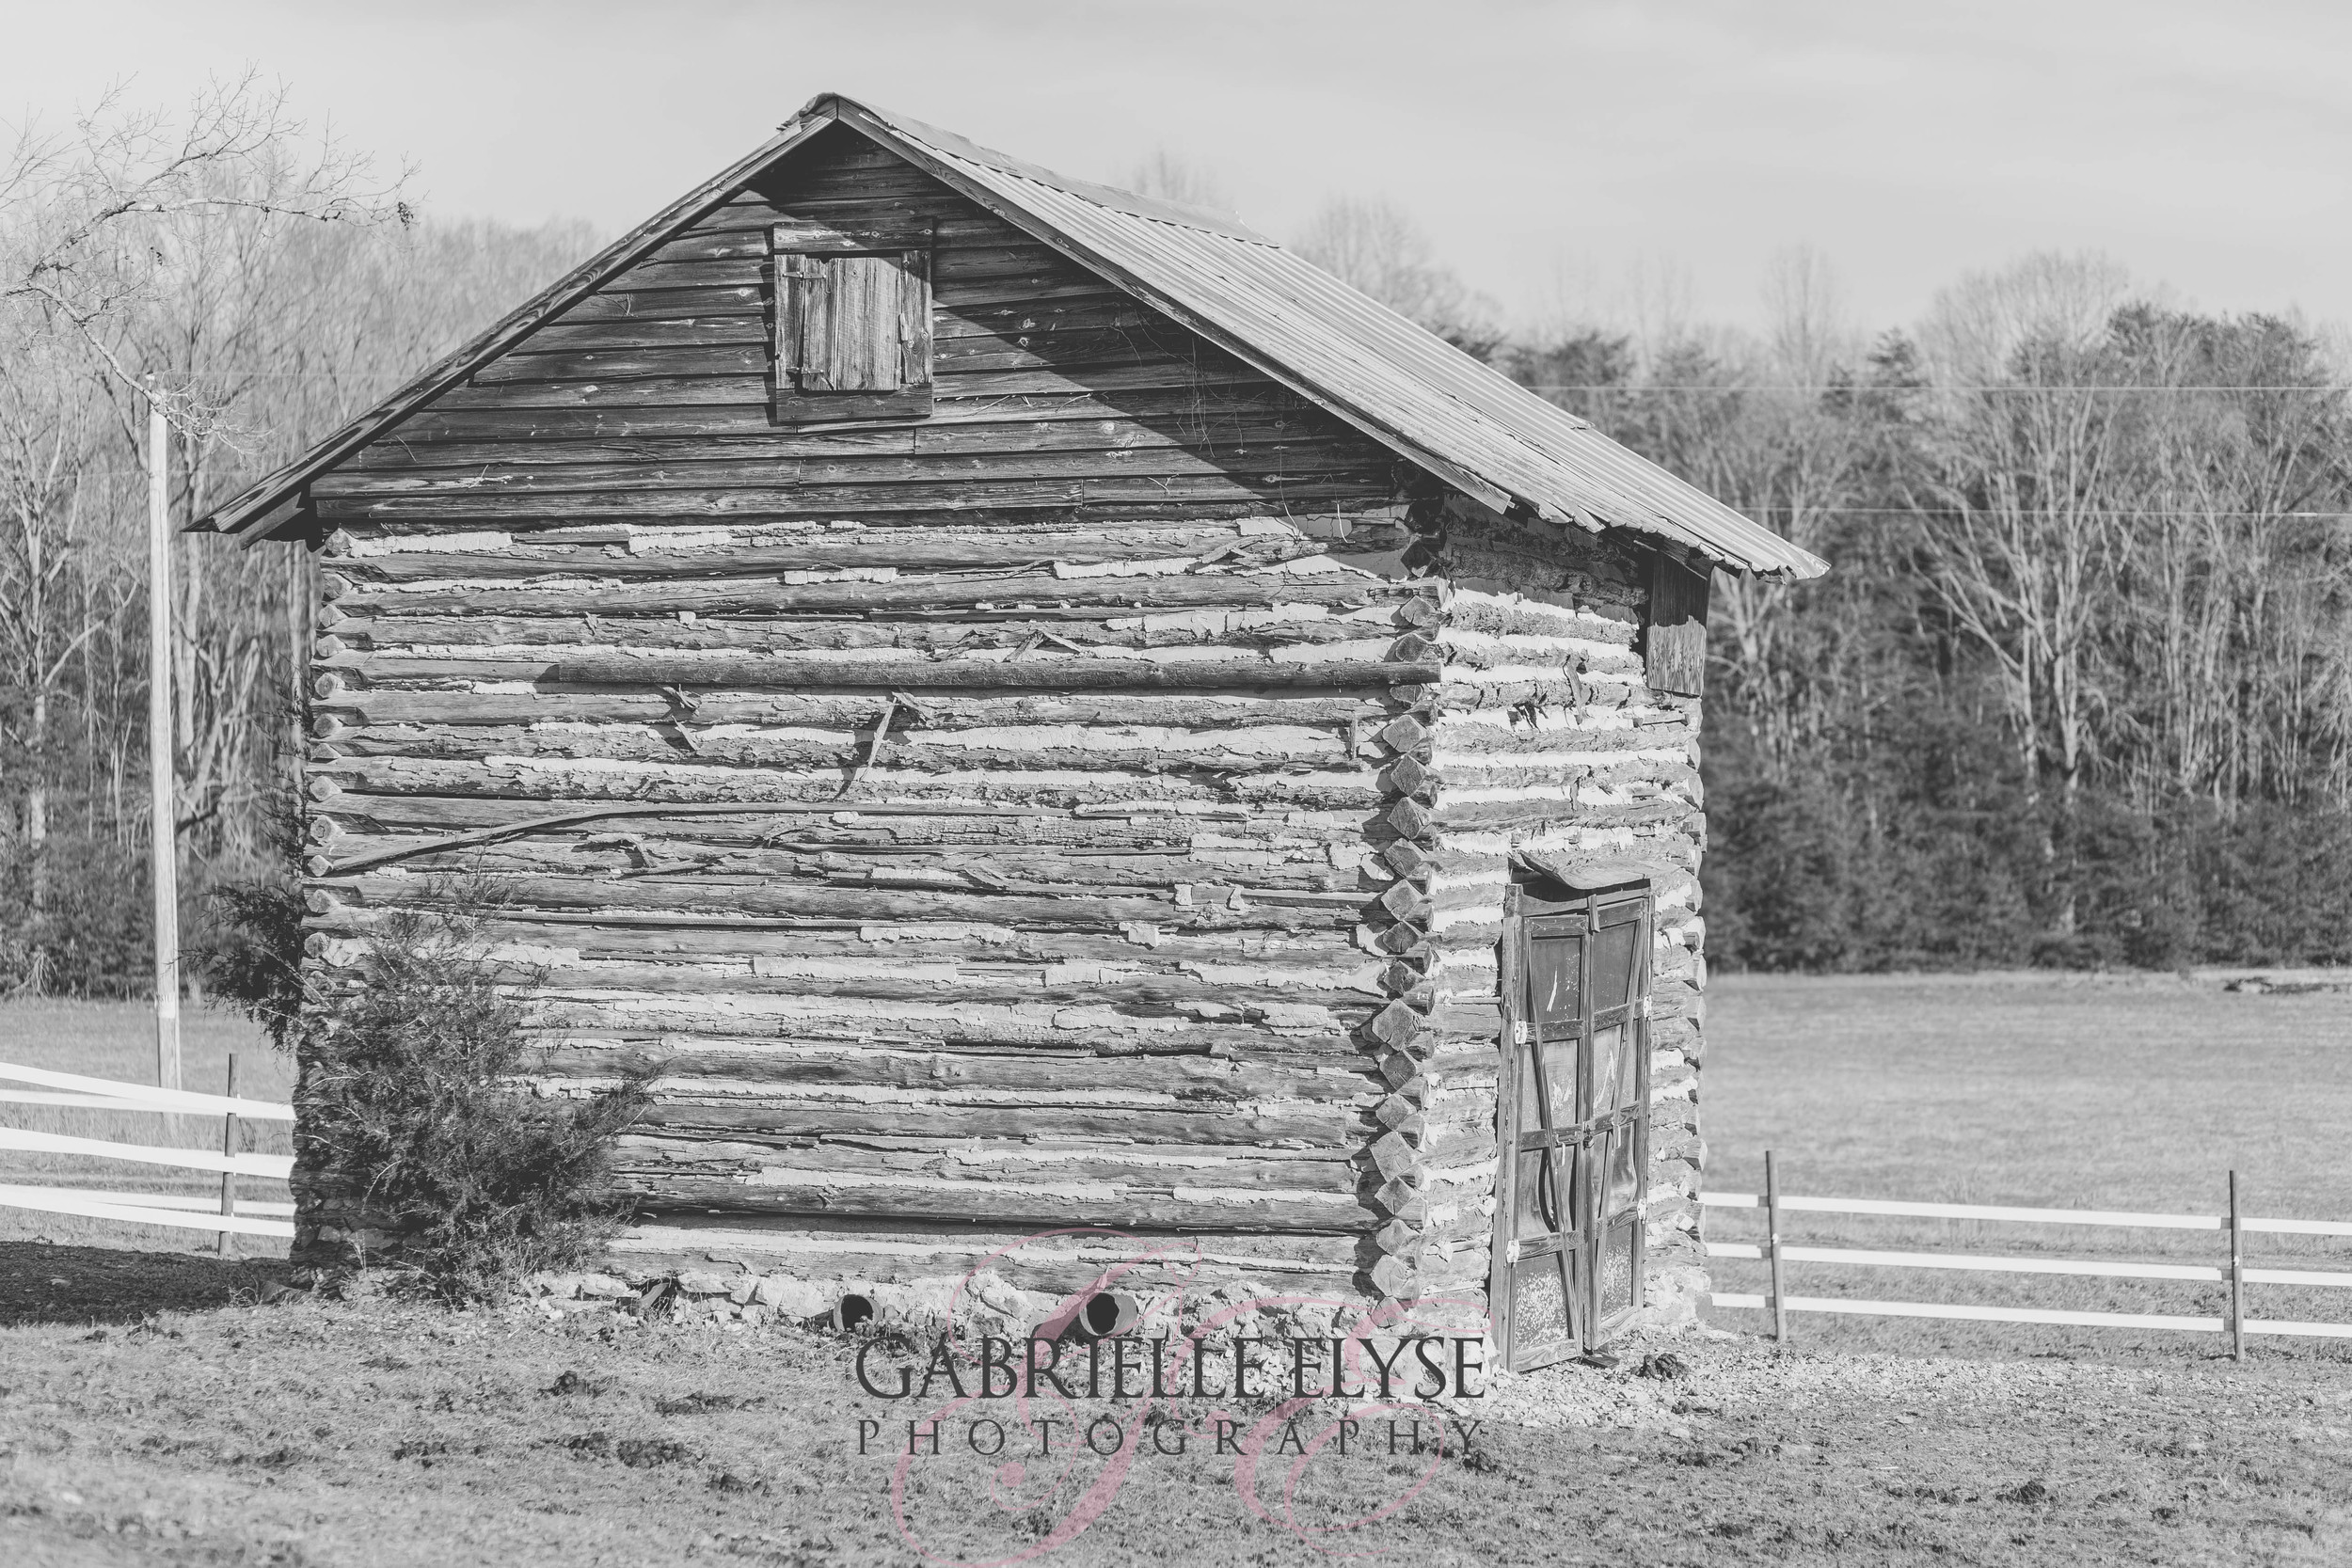 Something about old barns and houses that I just love